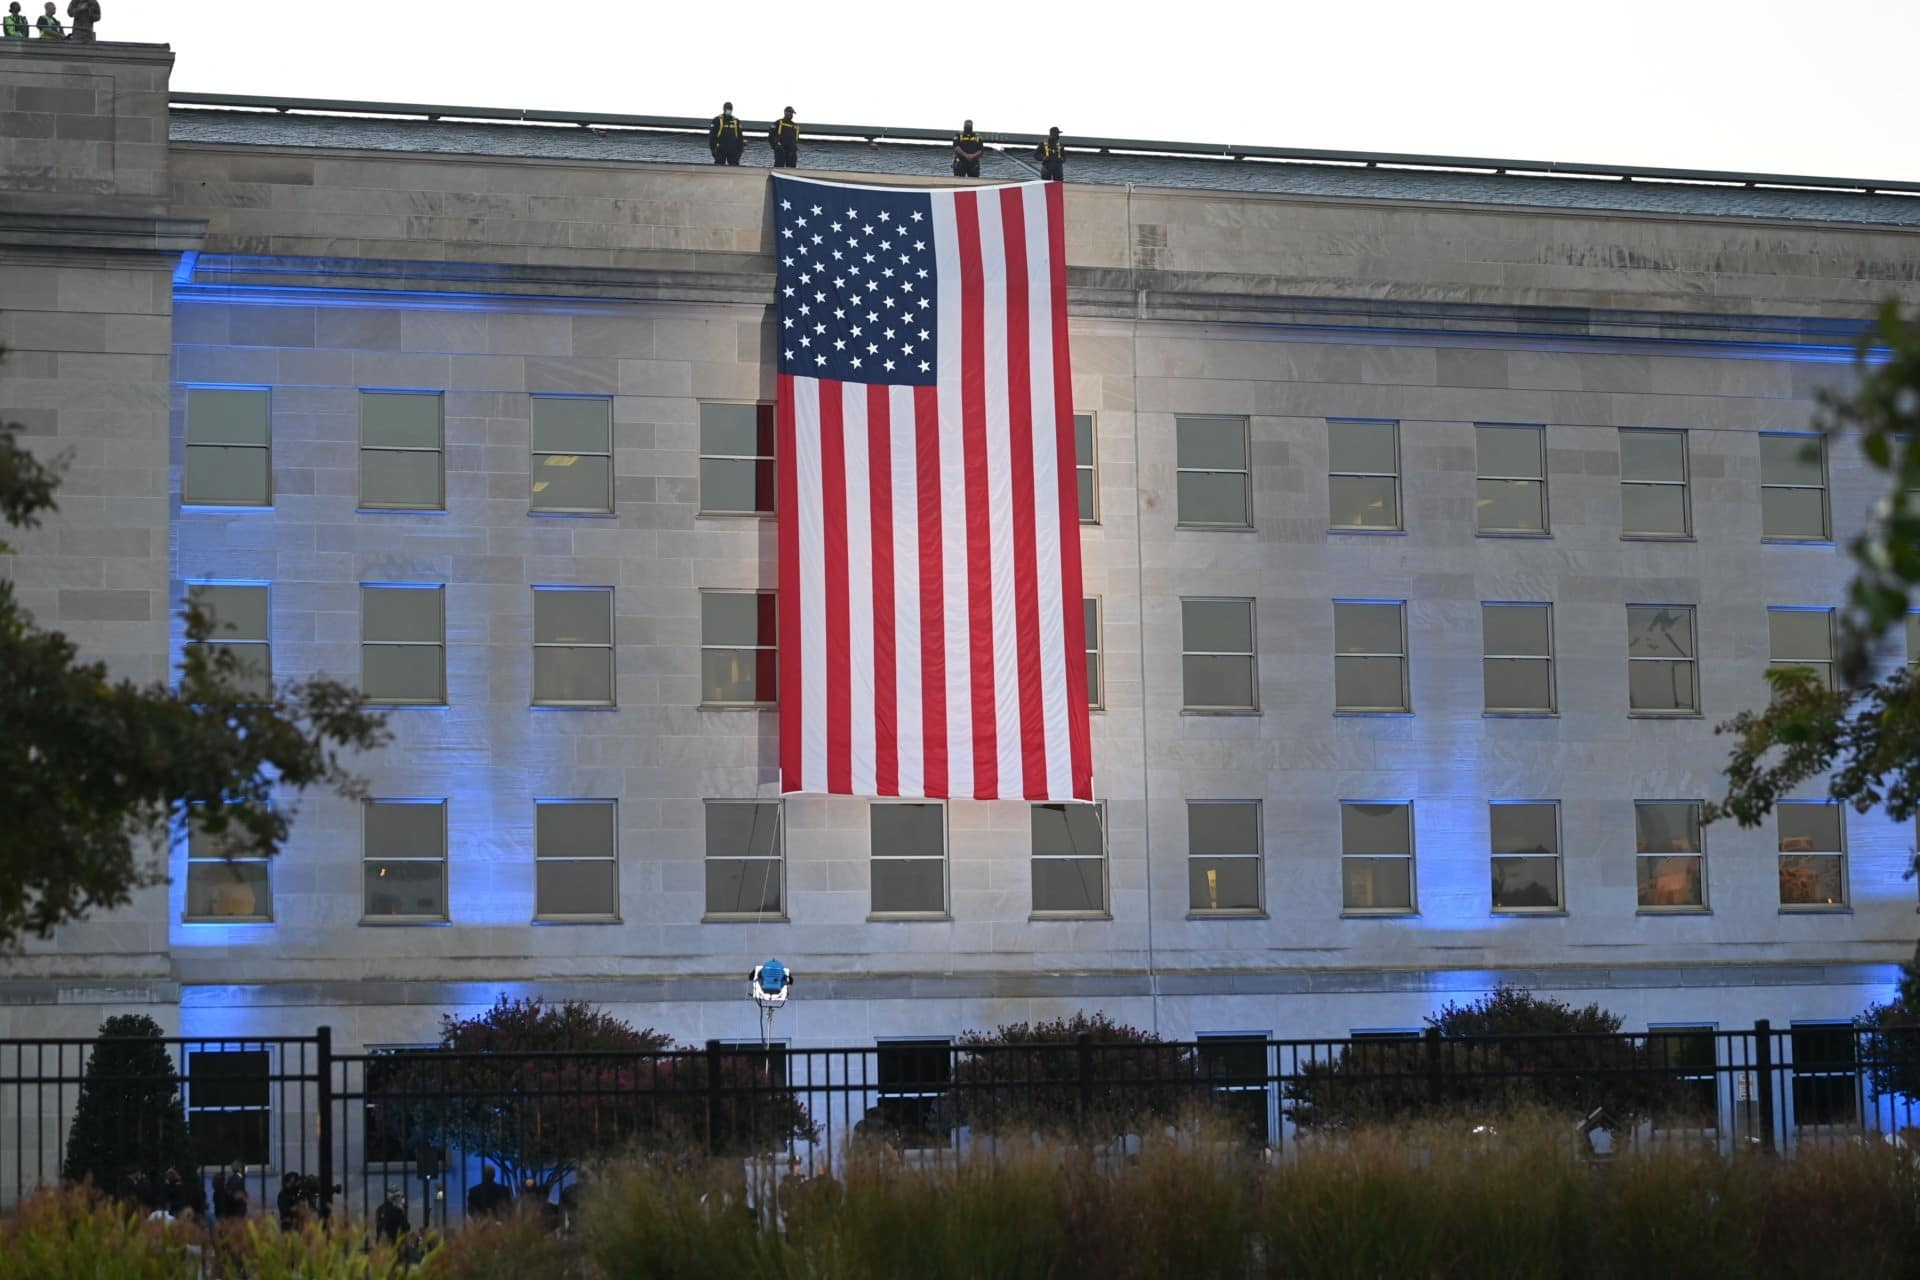 Washington School Banned 9/11 'Red, White, Blue' Tribute as 'Racially Insensitive' 1